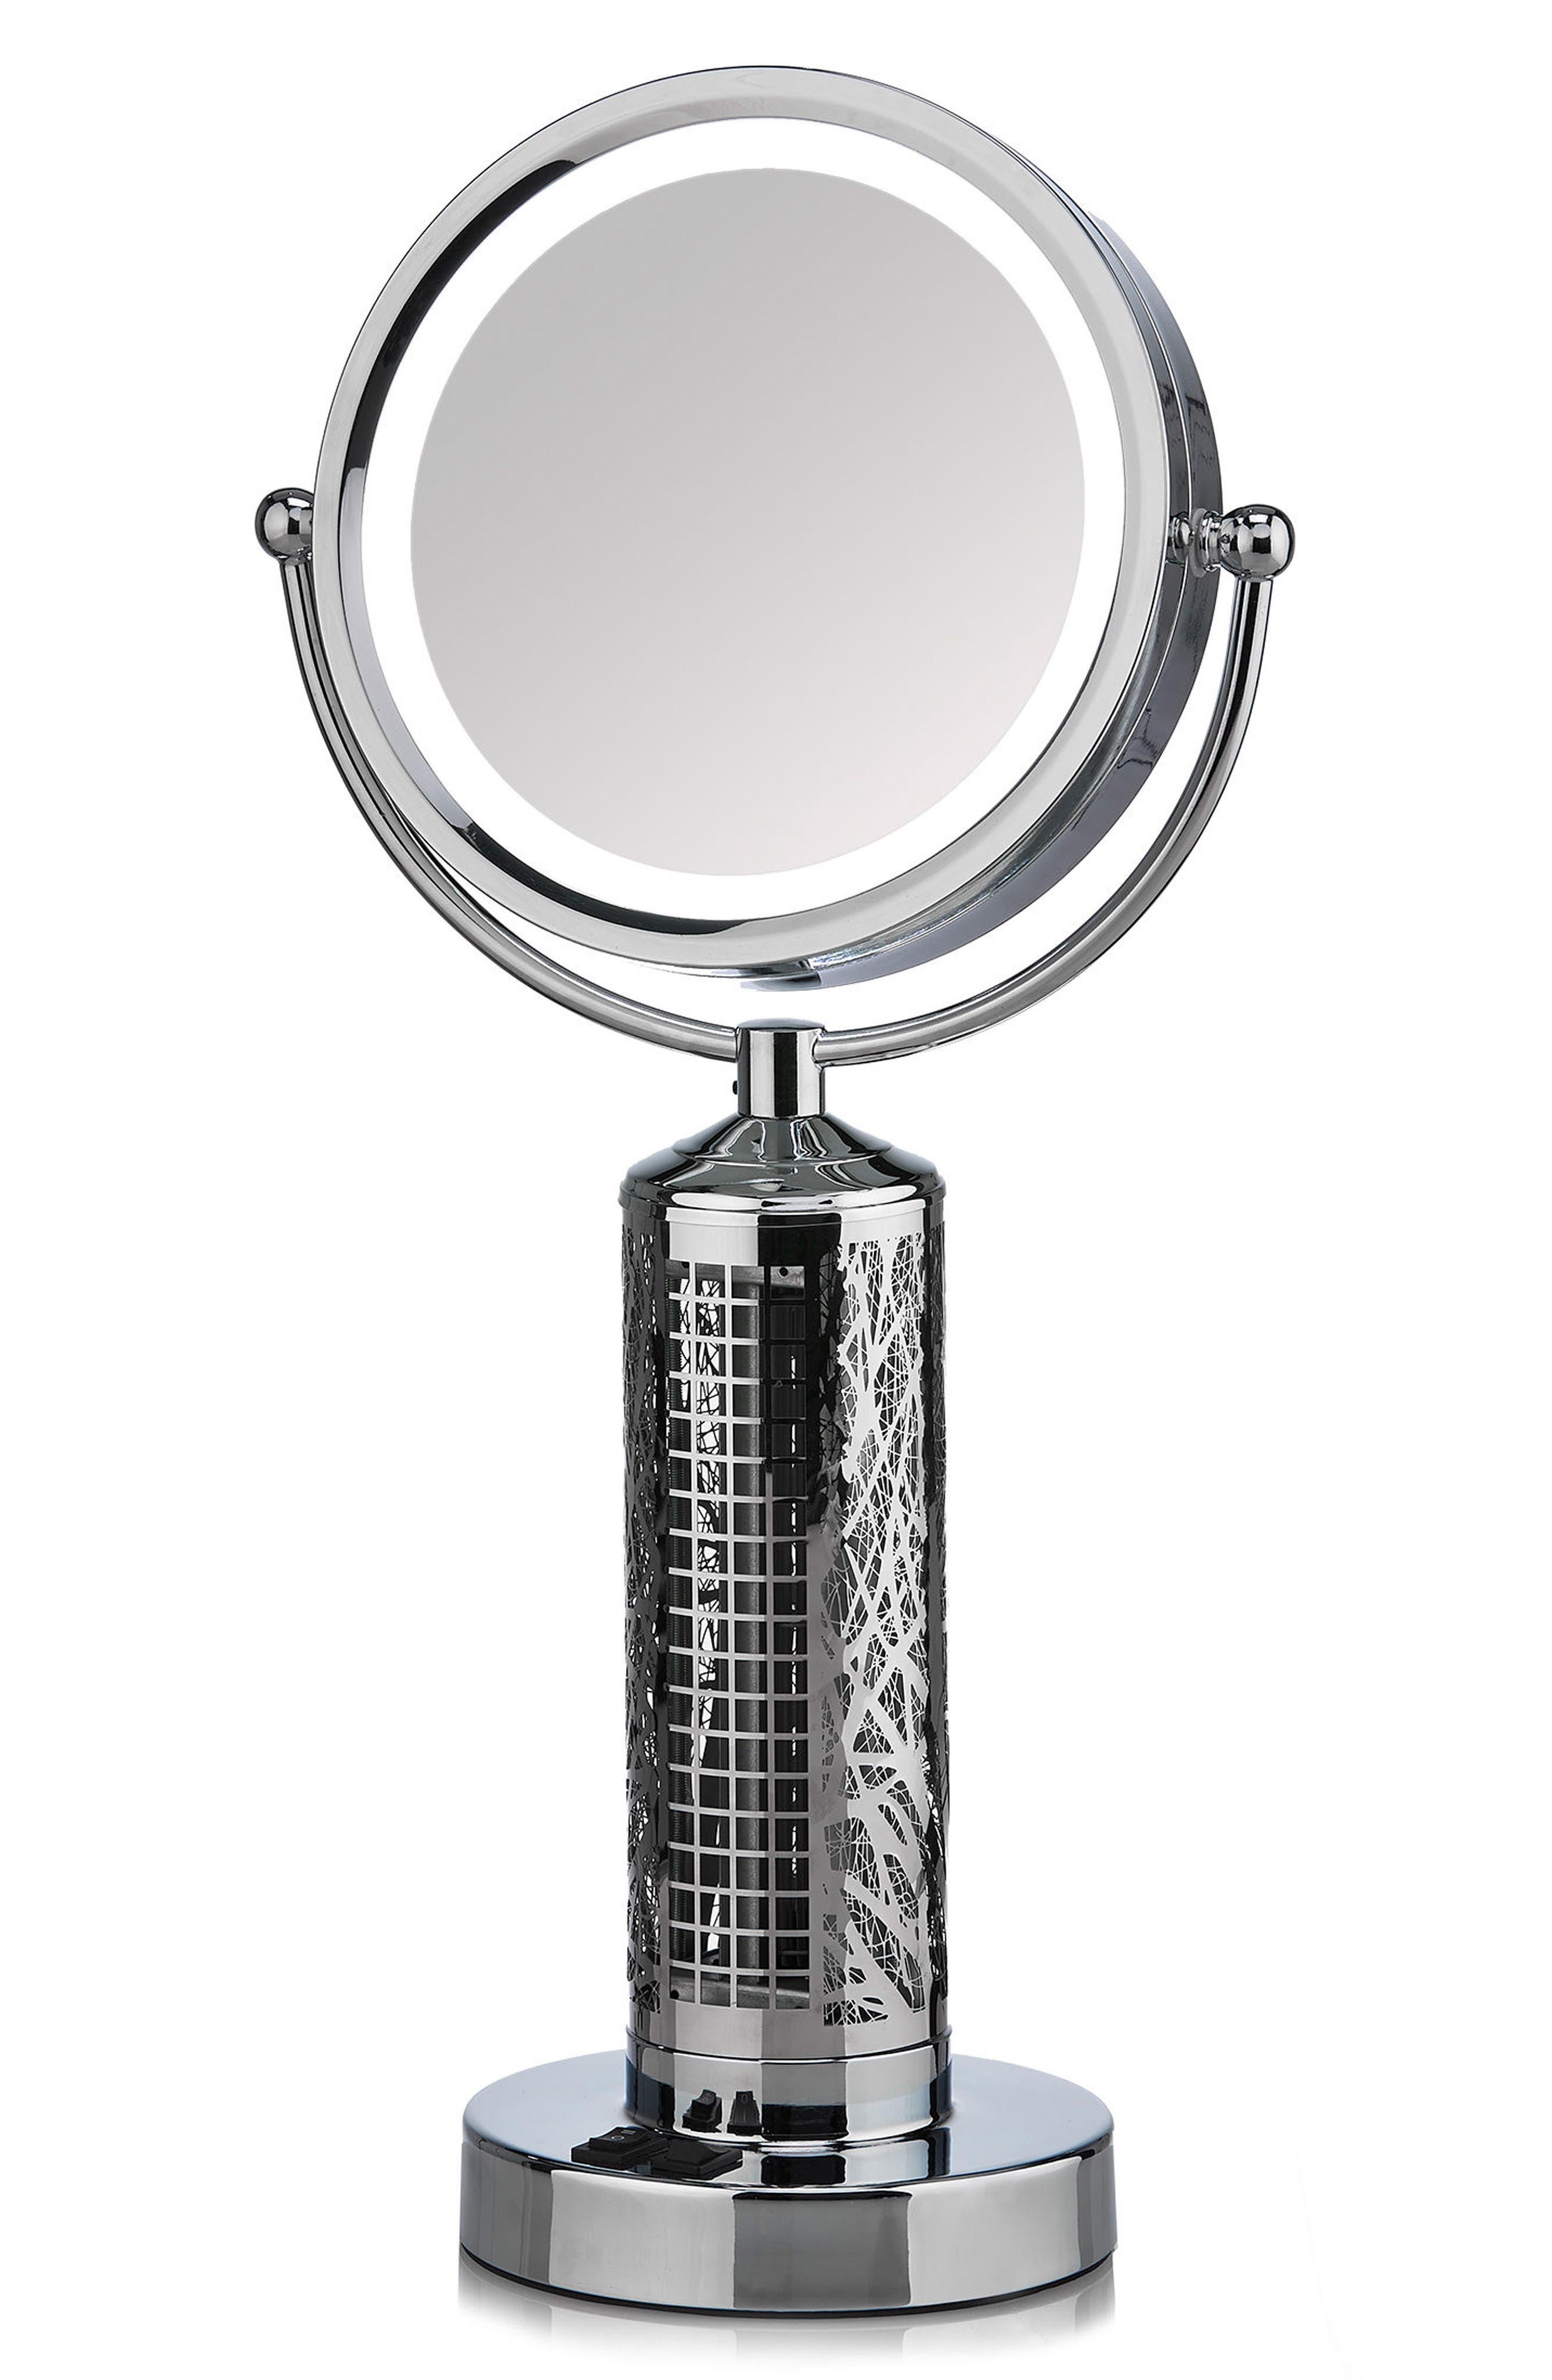 Alternate Image 1 Selected - DecoBREEZE Fanity Makeup Mirror with Electric Fan